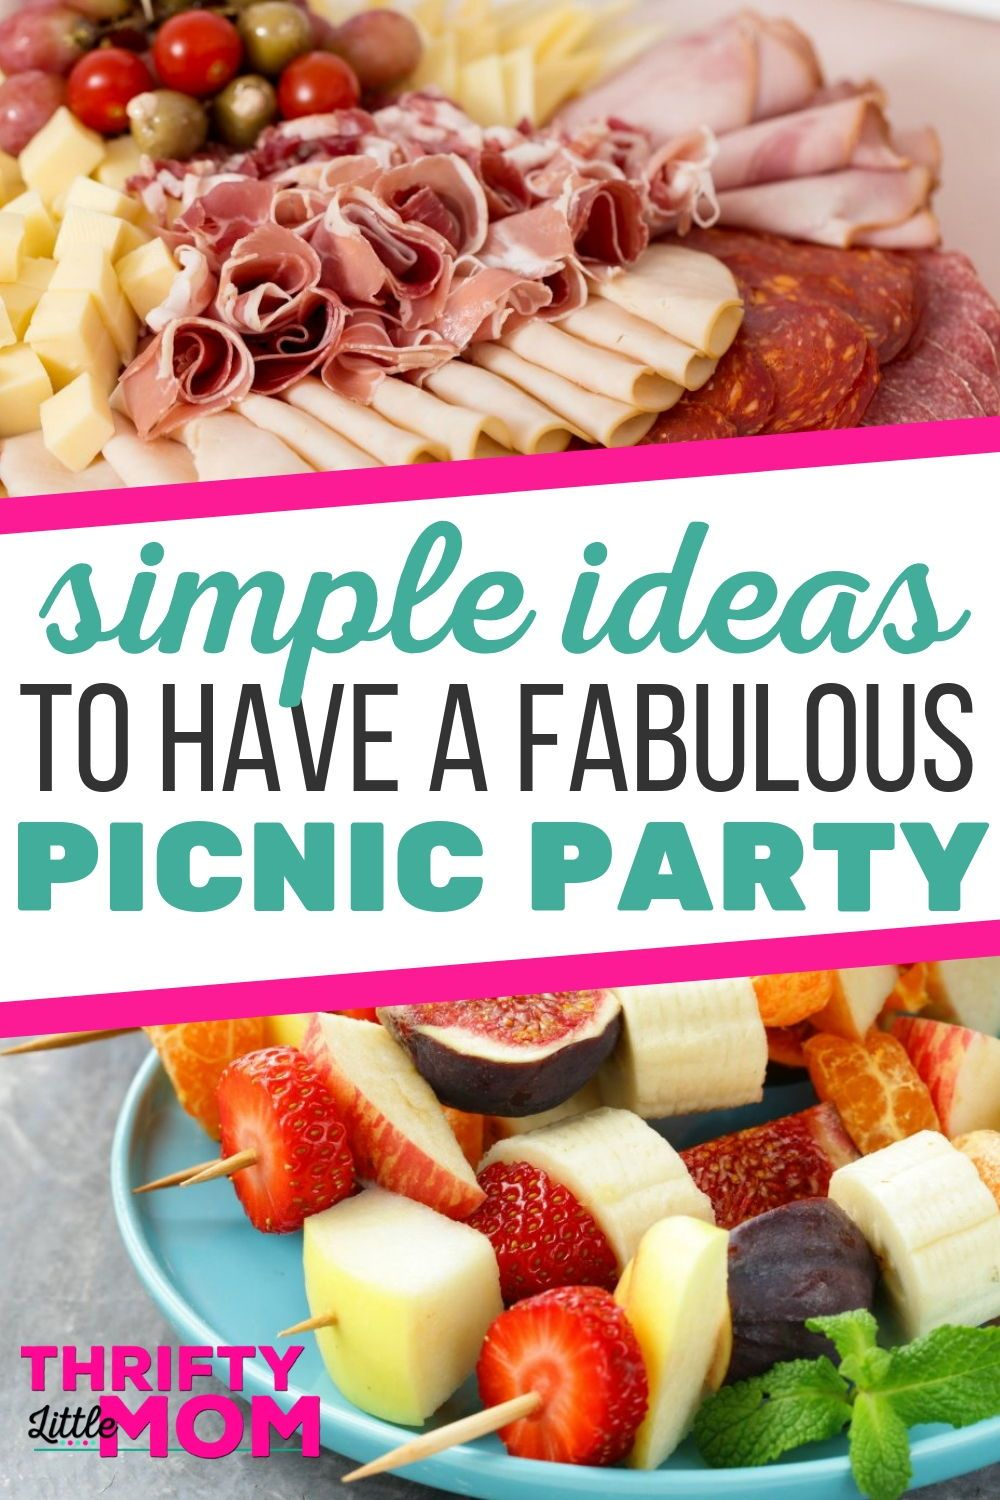 5 New Ideas To Impress Your Friends At Your Next Picnic Party Picnic Foods Picnic Party Food Summer Picnic Food